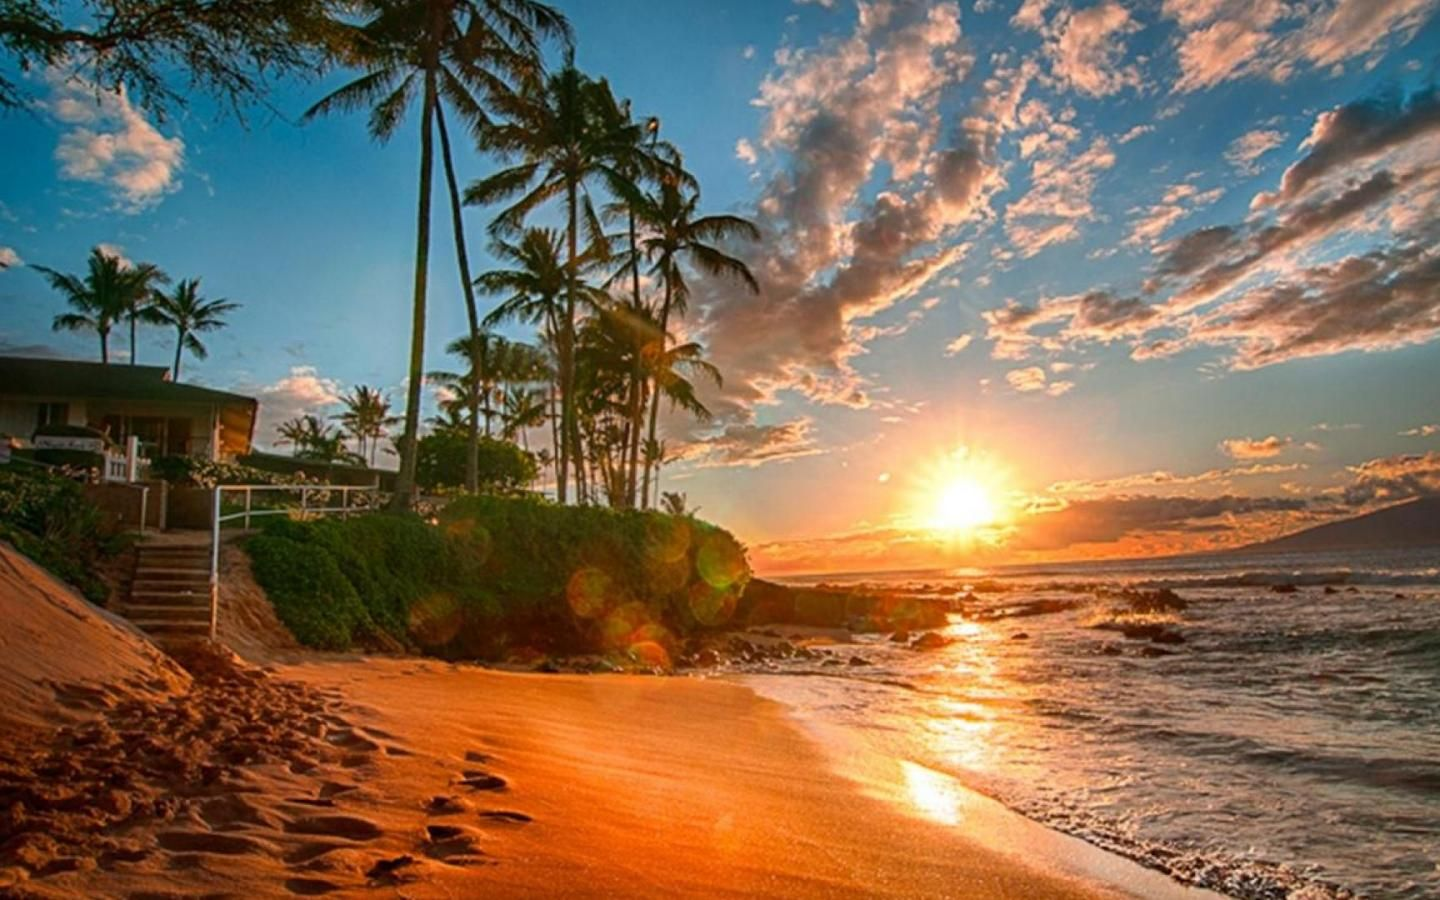 Hawaii Wallpapers High Quality | Sunsets hawaii, Hawaii ocean, Hawaii  beaches